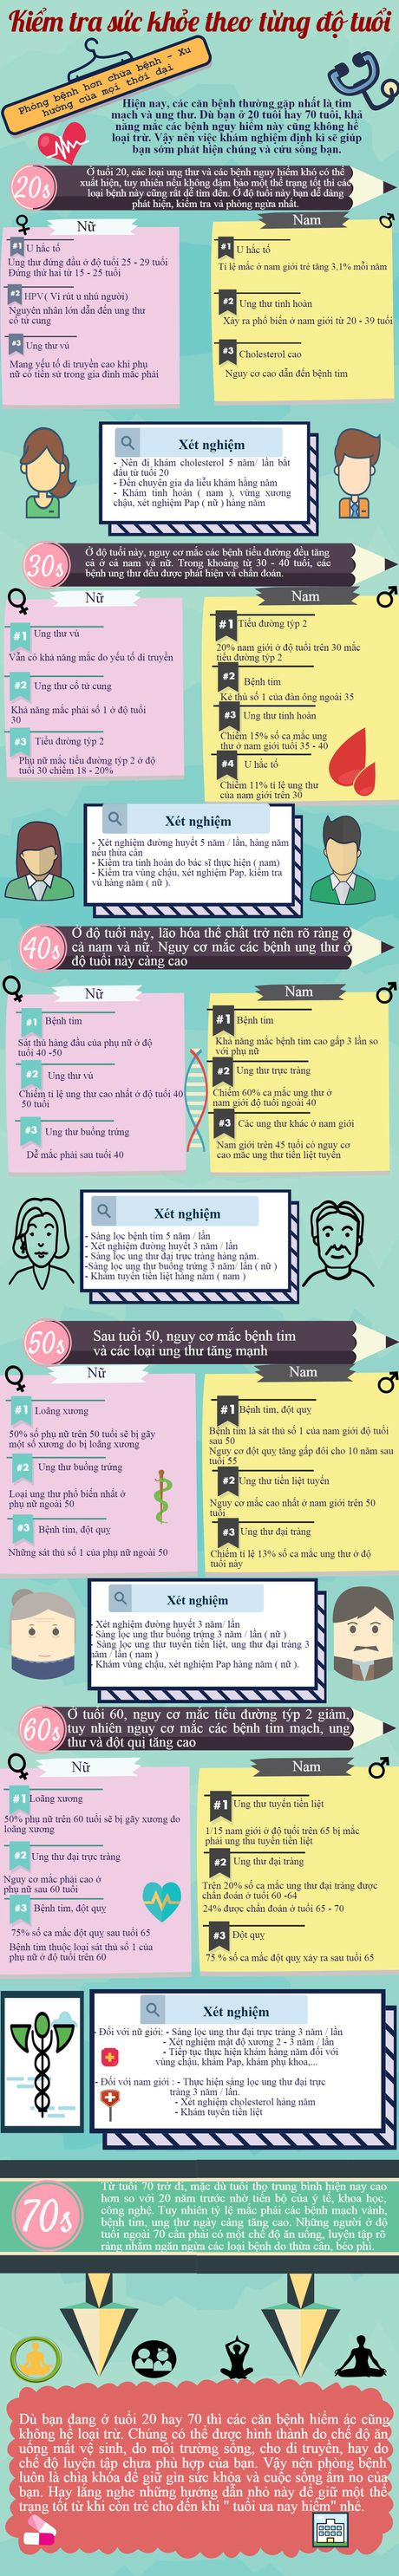 Infographic: Diem mat nhung benh nguy hiem theo tung do tuoi - Anh 1